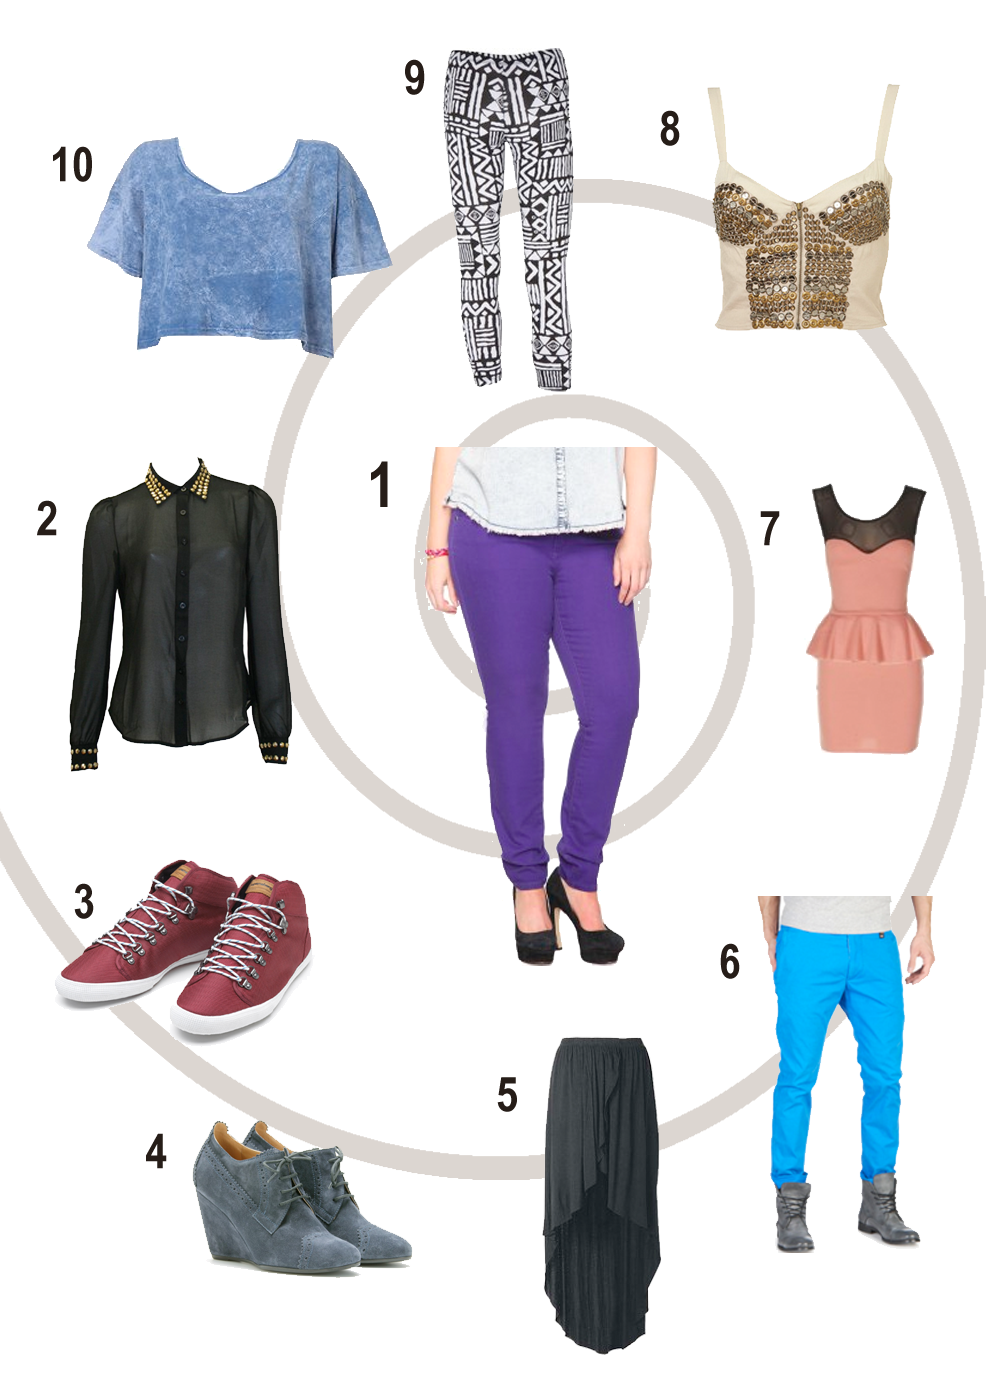 82300724f FASHION  Top 10 Most Popular Trends of 2012